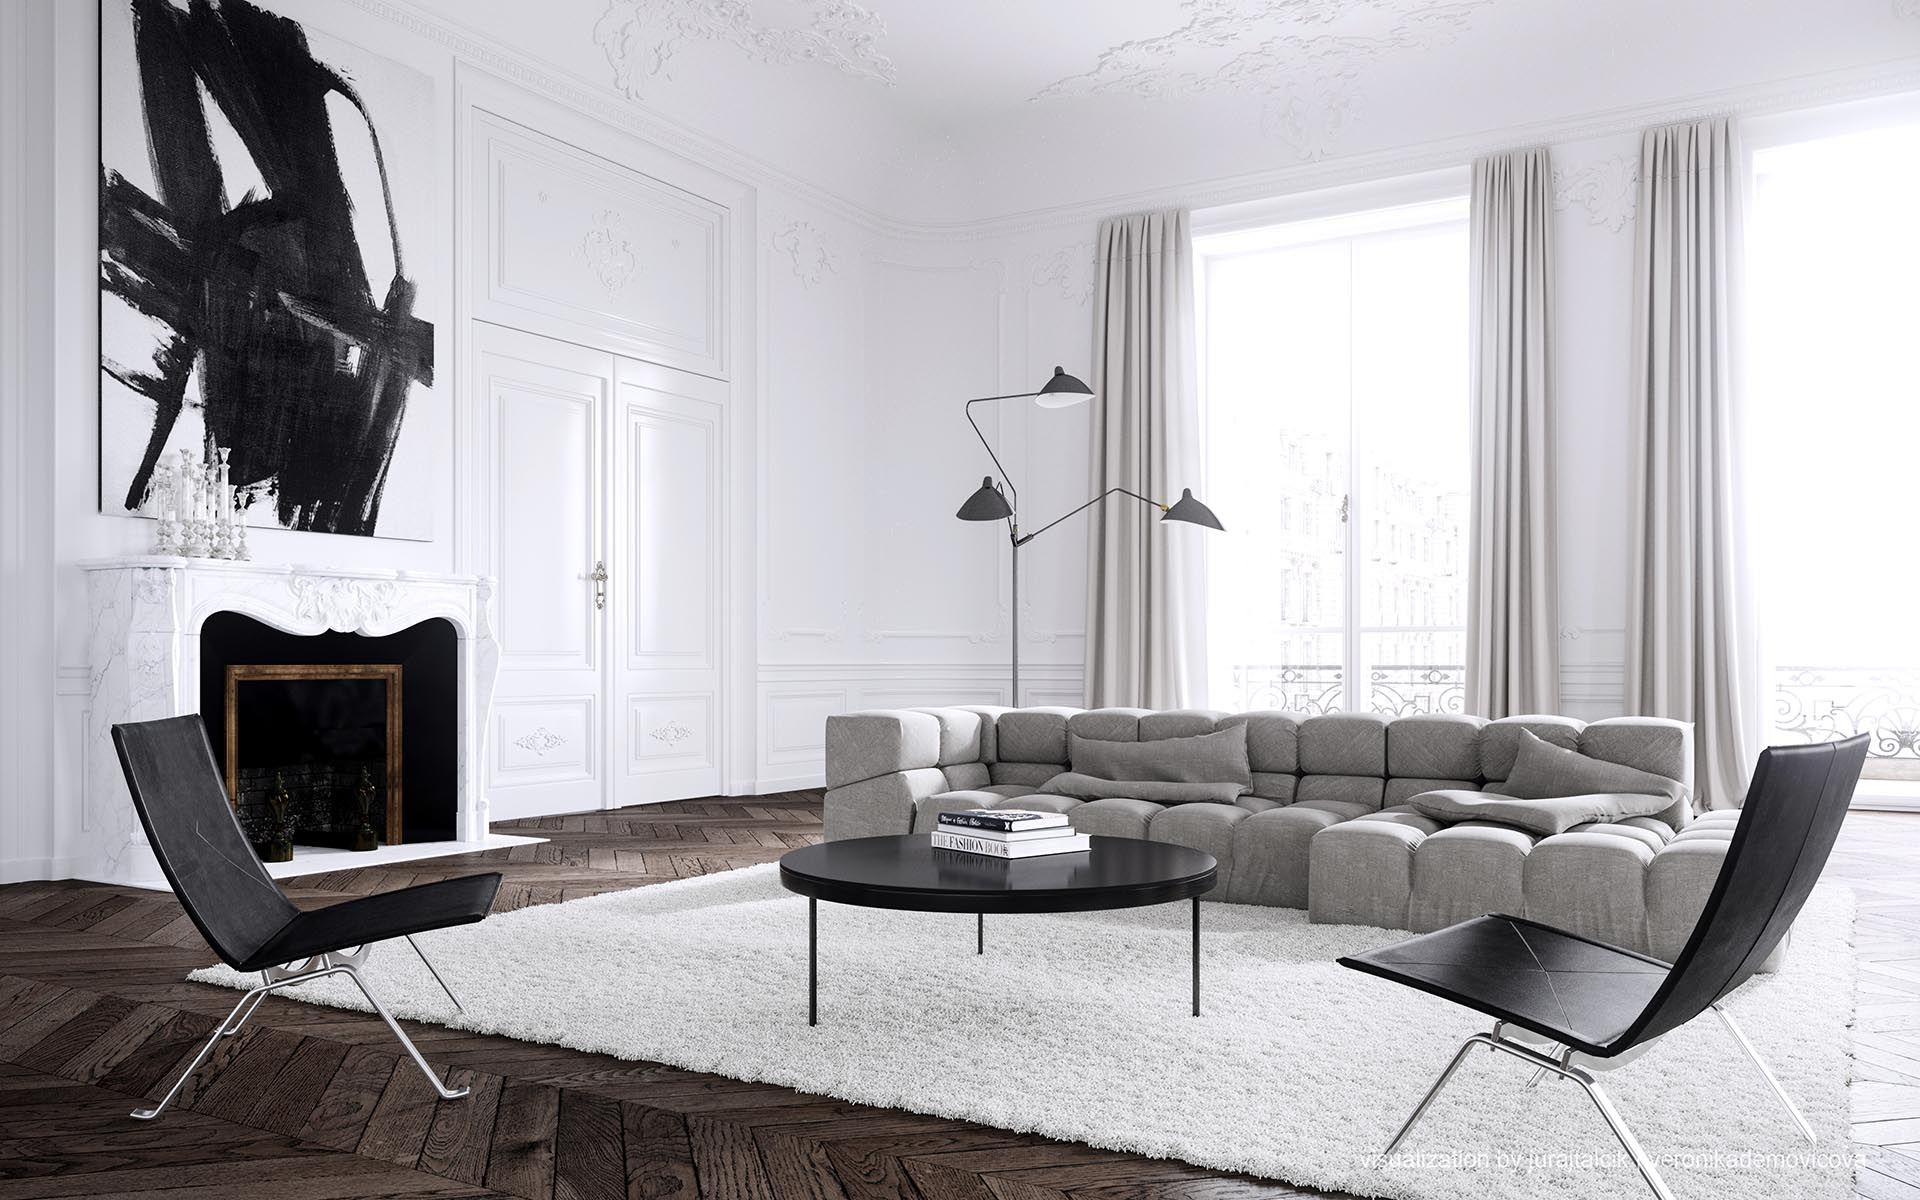 PARIS APARTMENT Interior Design By Jessica Vedel. Puristic And Minimalistic  Interior Of A Living Room. Excellent Symbiosis Of Classic With Modernity.